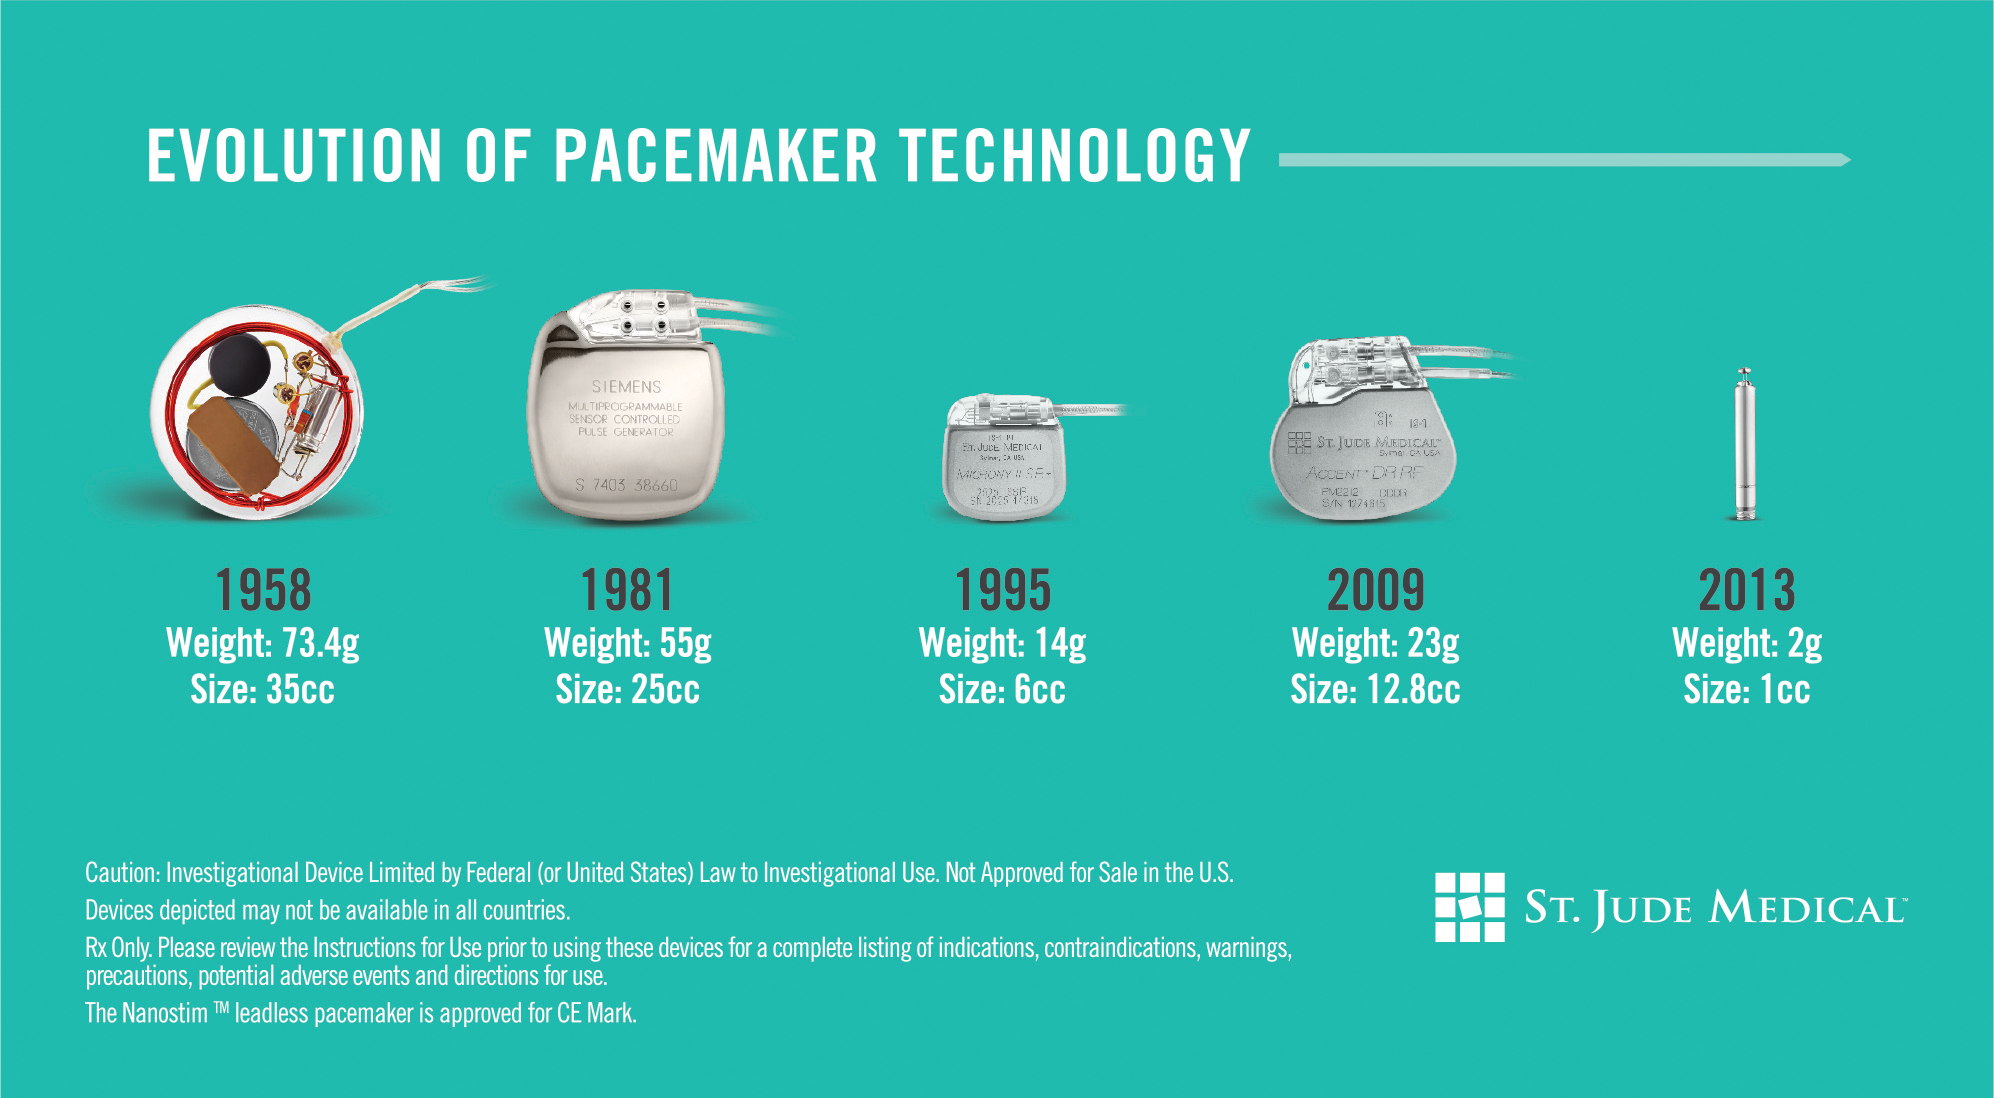 New Pacemaker Radically Changes The Way Heart Procedures Are Done